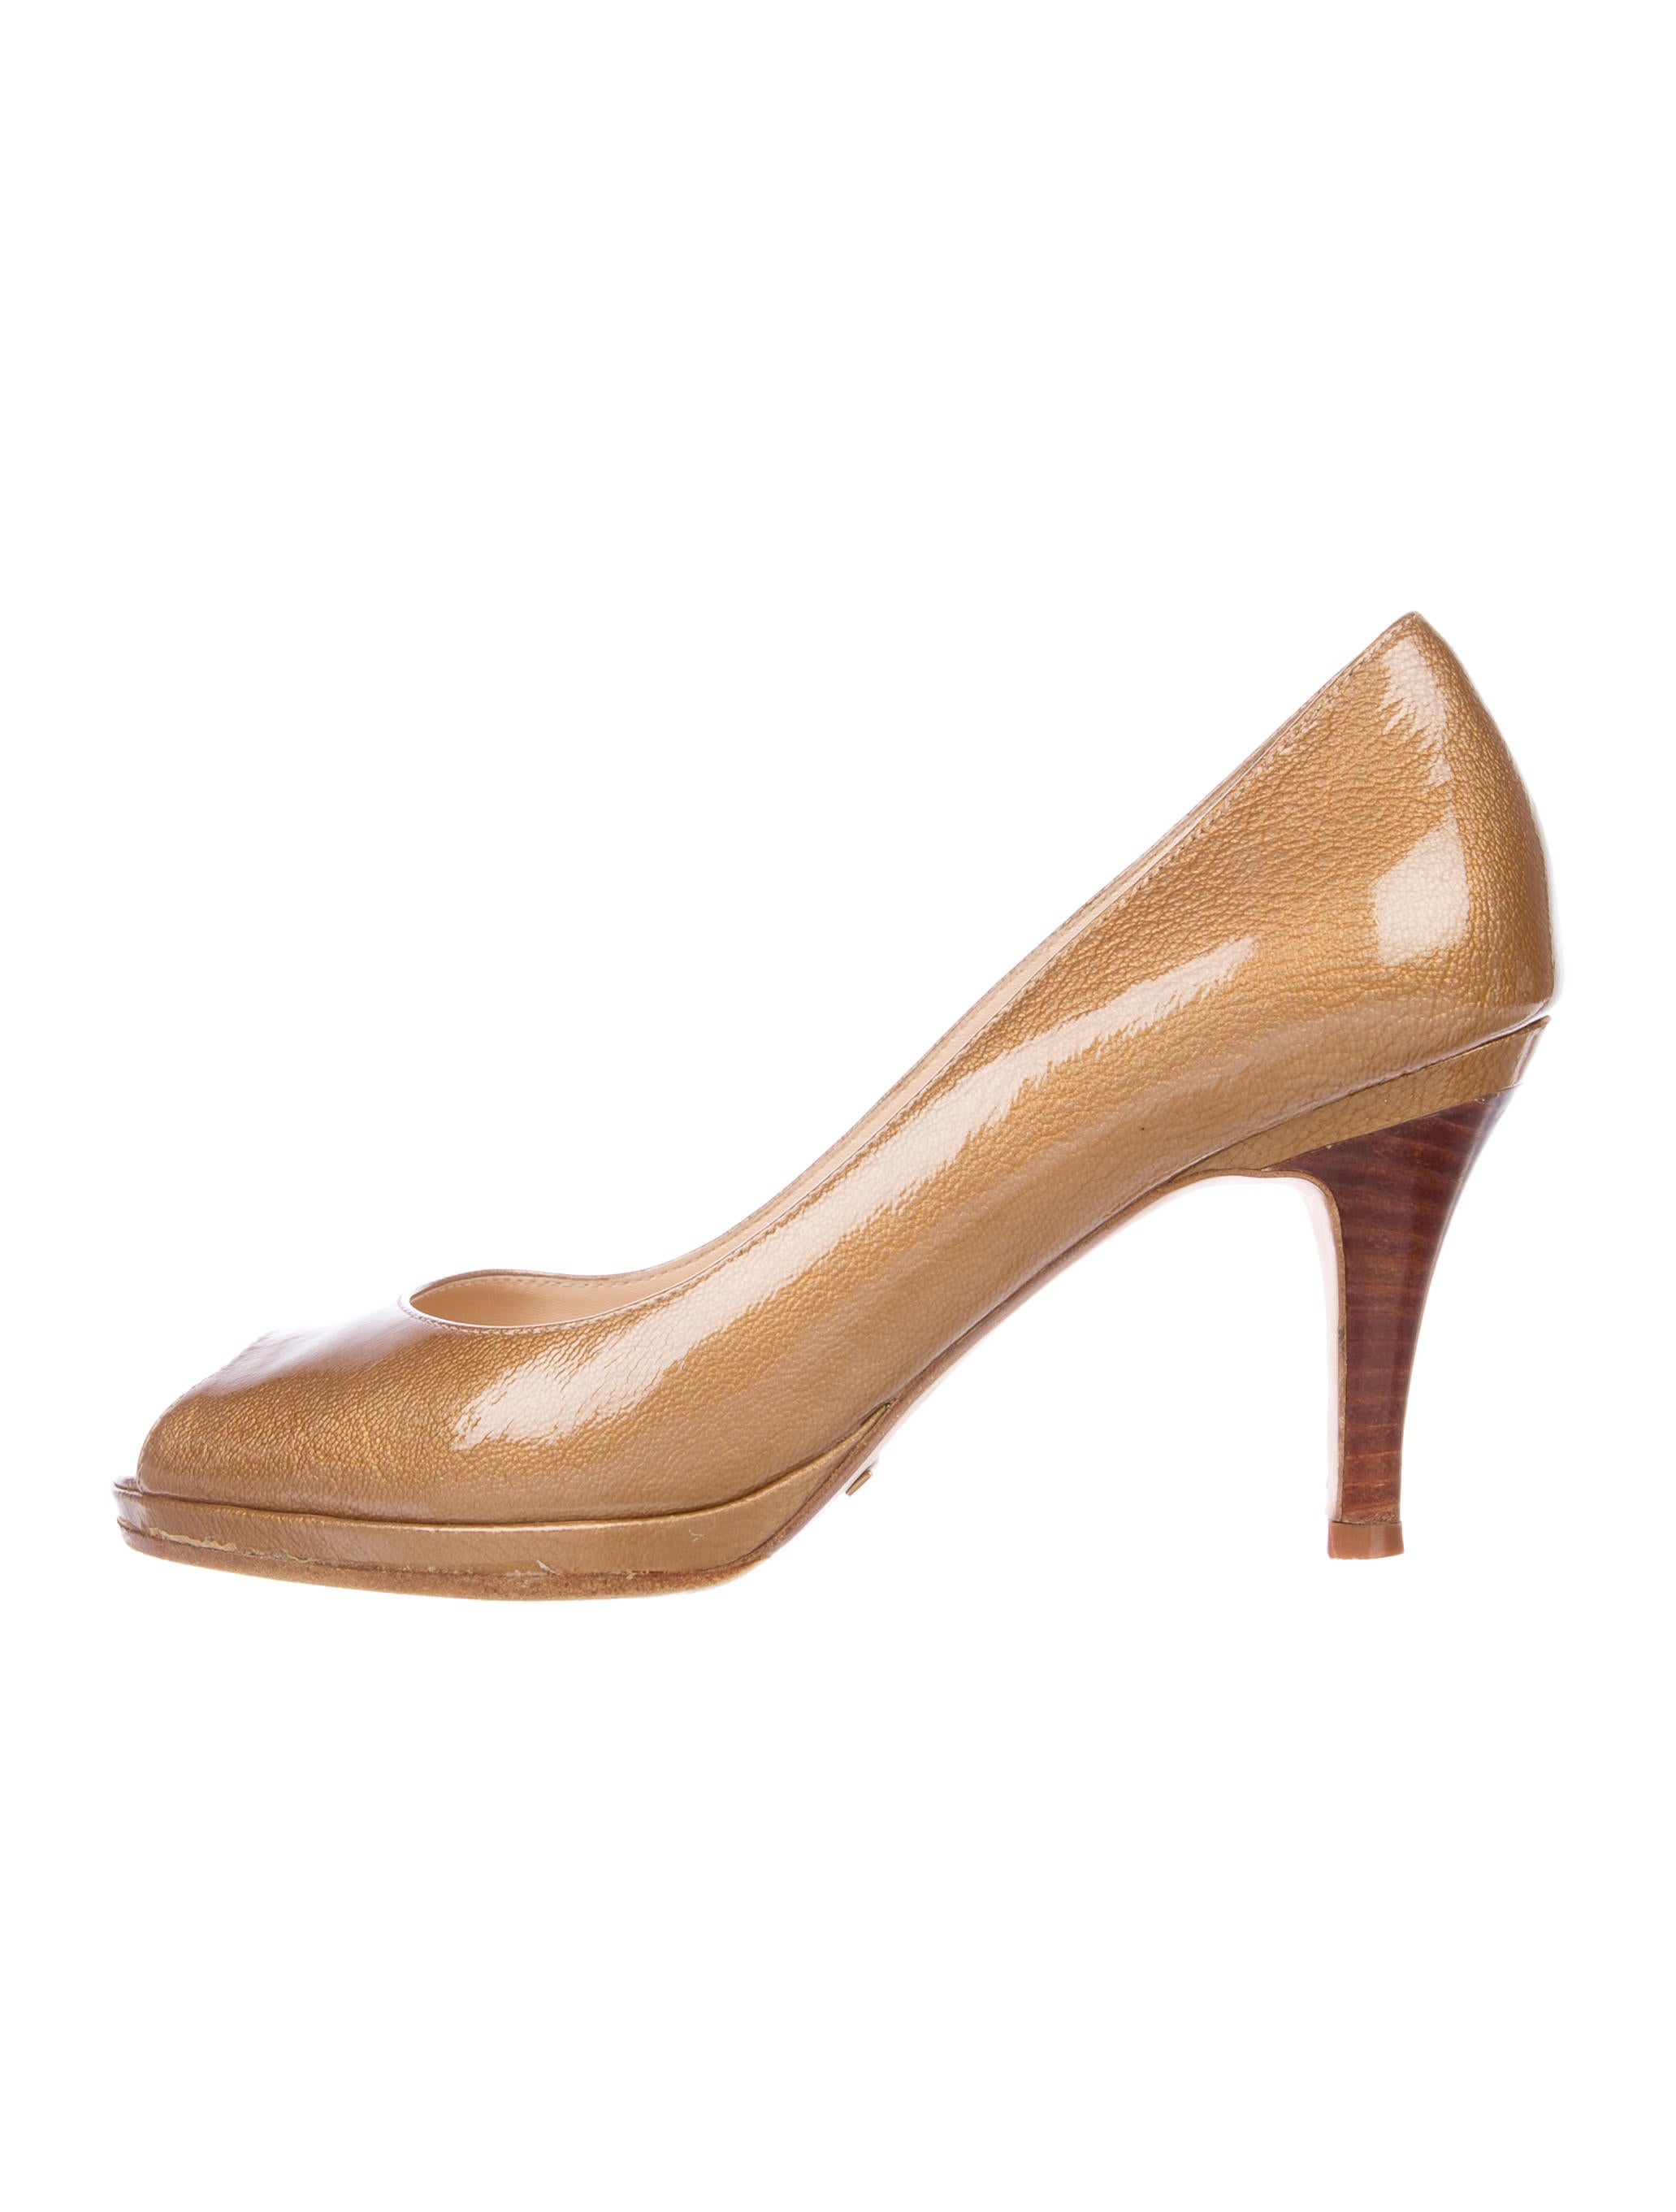 cheap choice outlet store for sale Cole Haan Metallic Peep-Toe Pumps free shipping pay with paypal best prices cheap online cheap sale newest GScHulGBb8